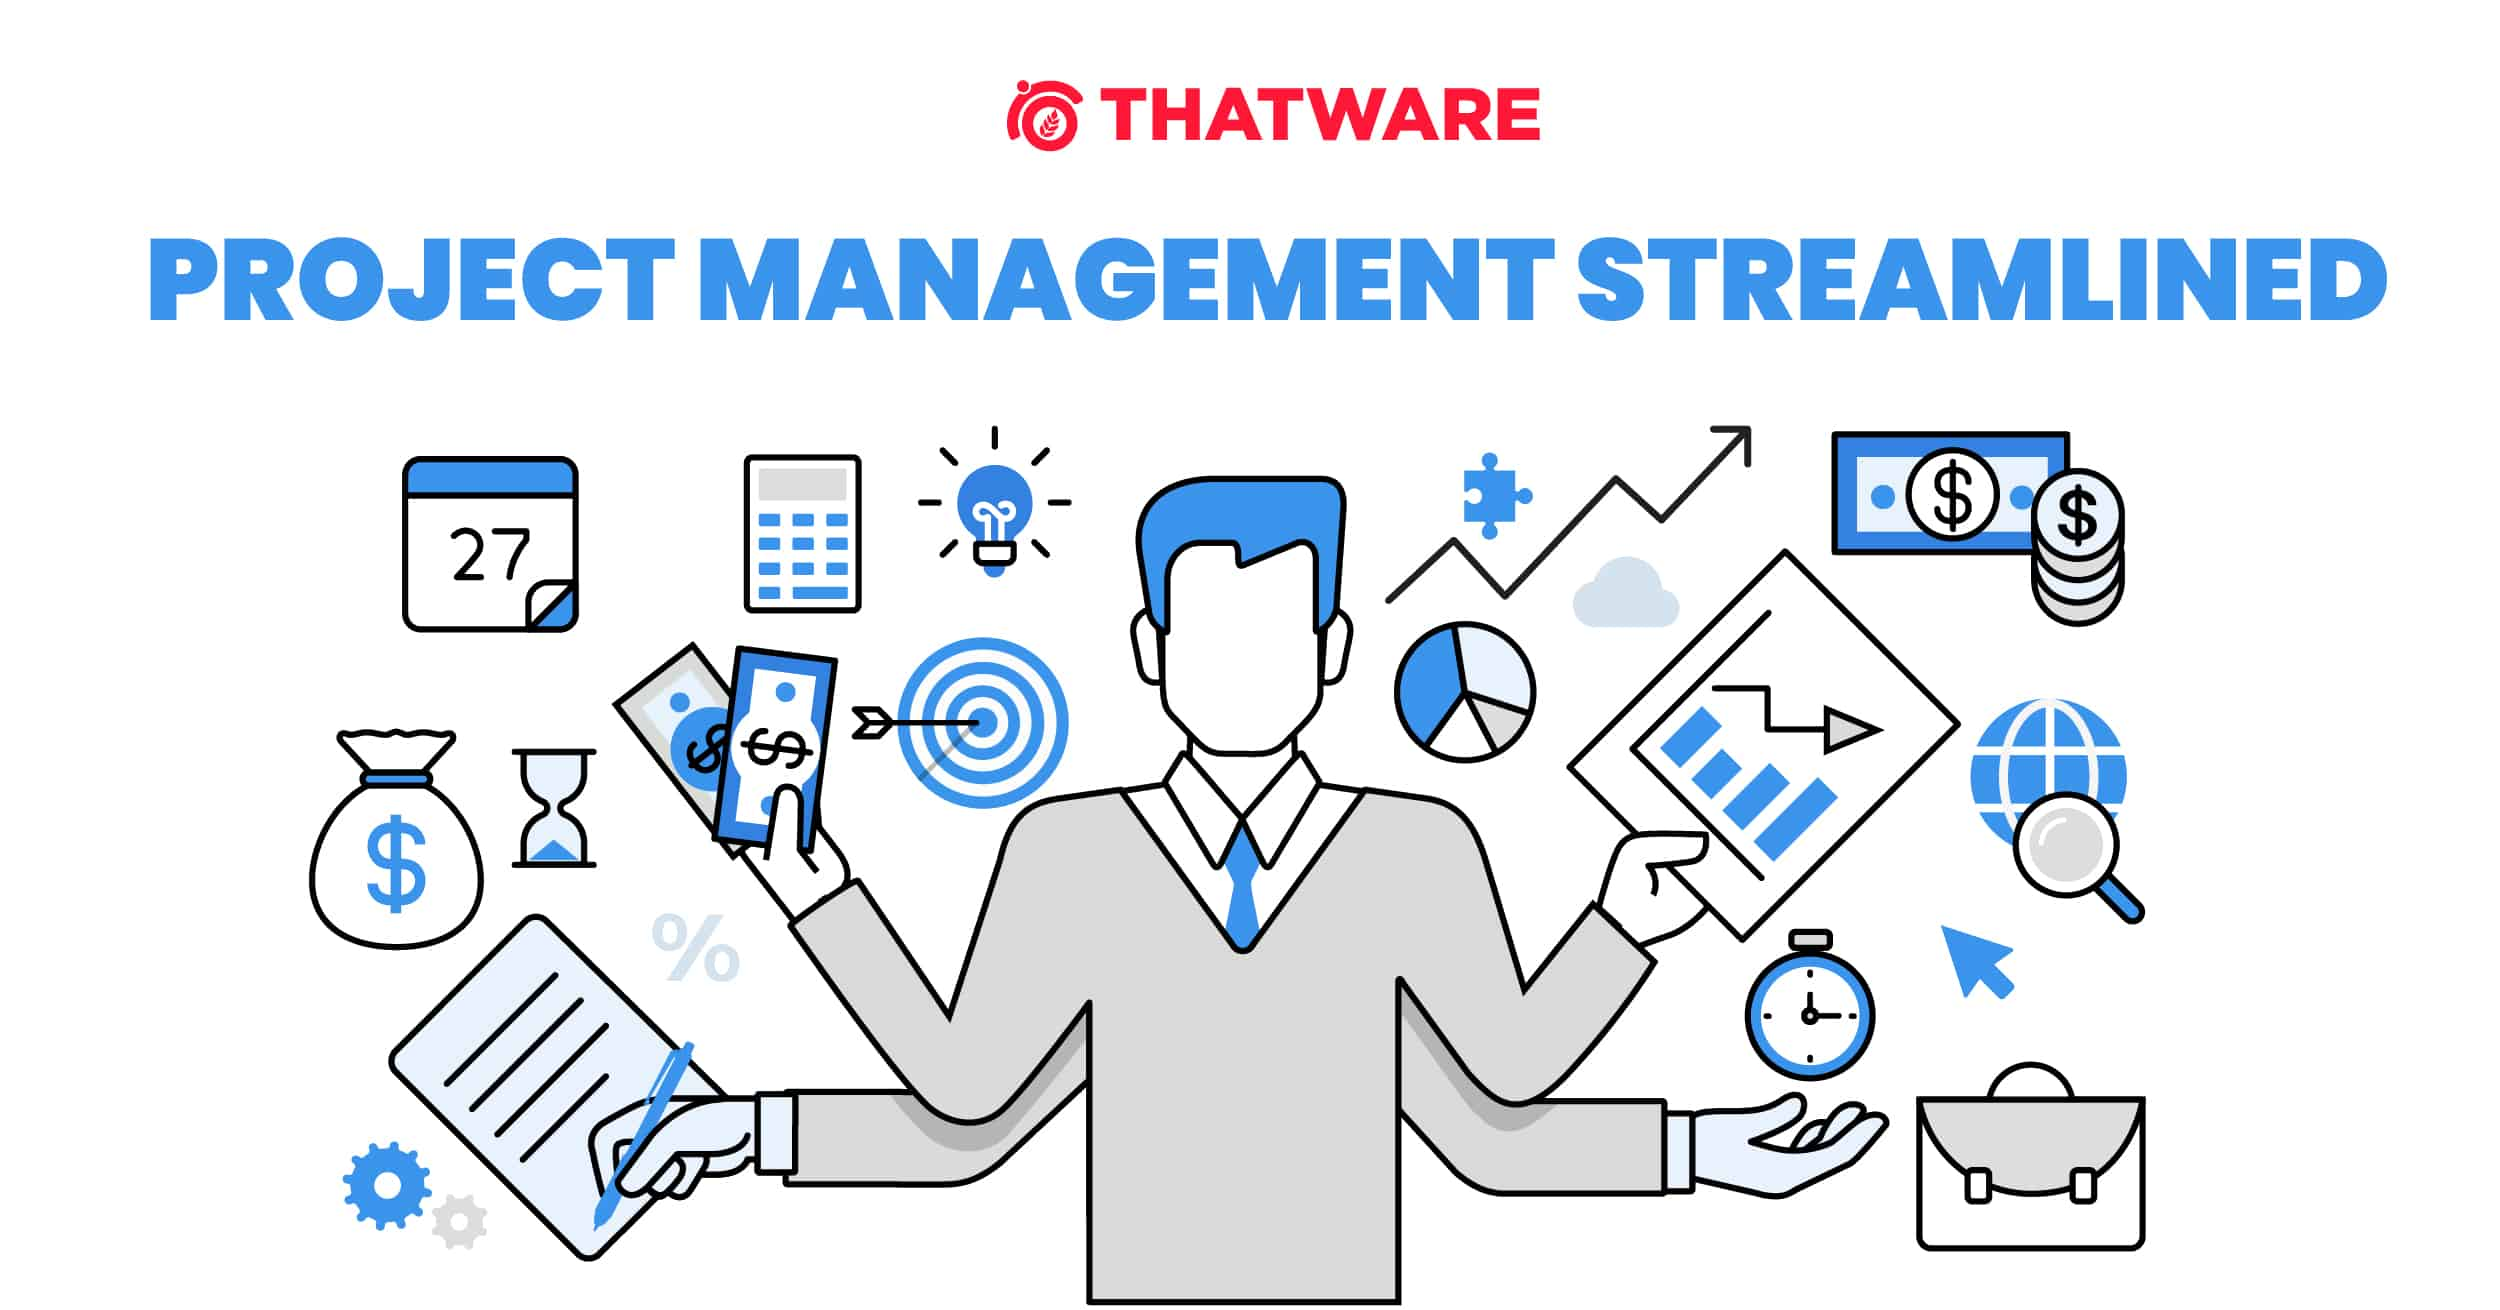 PROJECT MANAGEMENT STREAMLINED